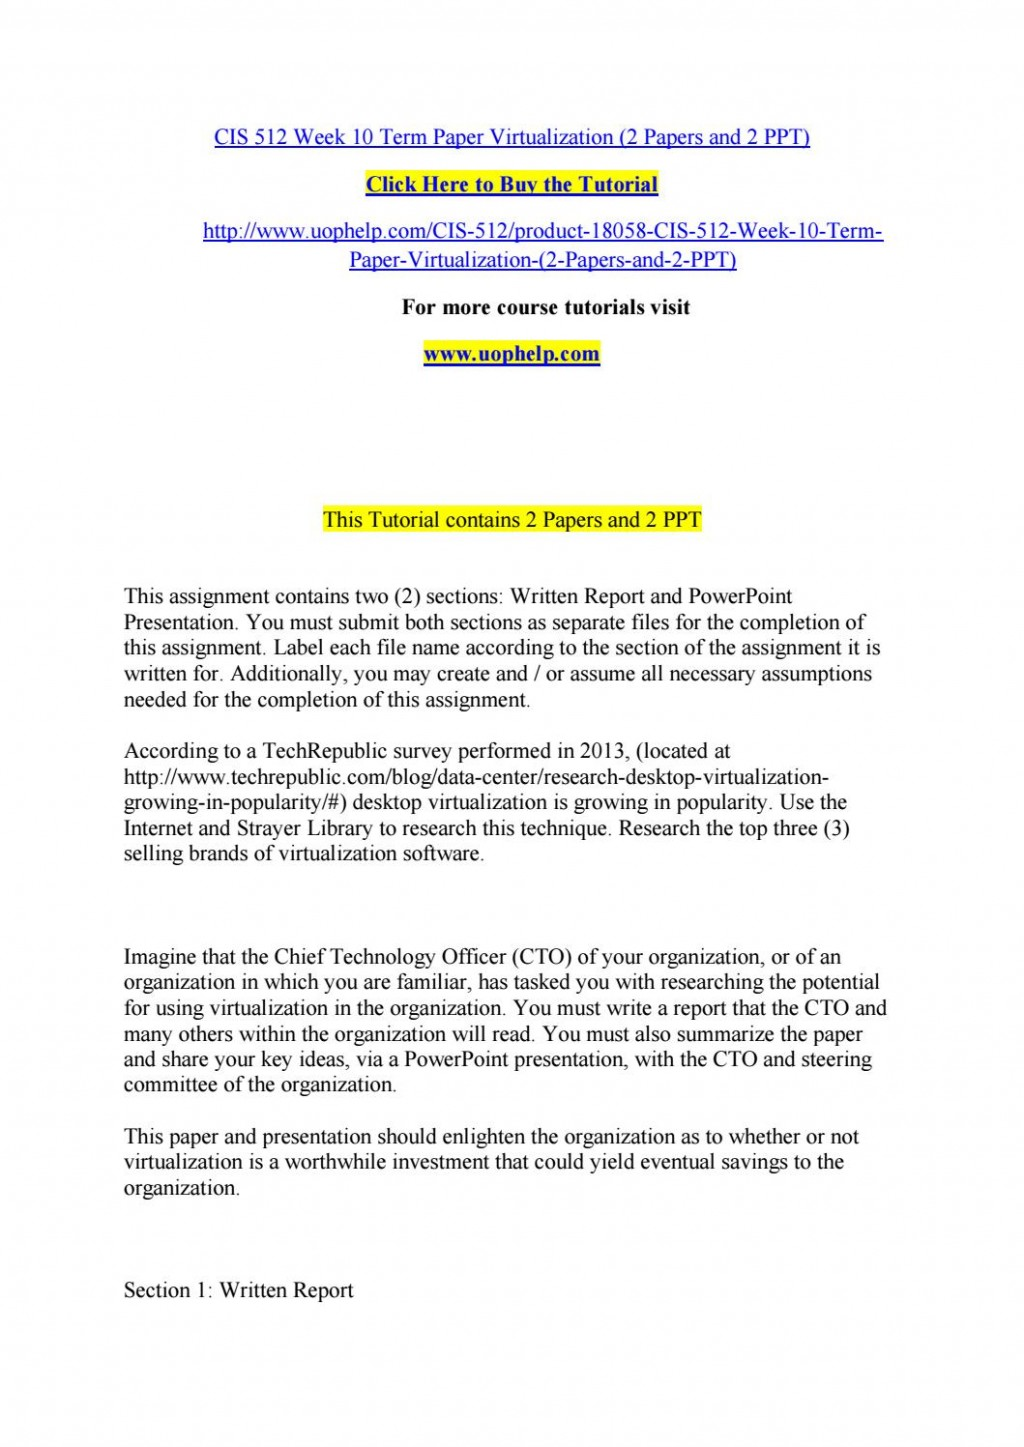 005 How To Read Research Papers Ppt Paper Page 1 Fascinating Large